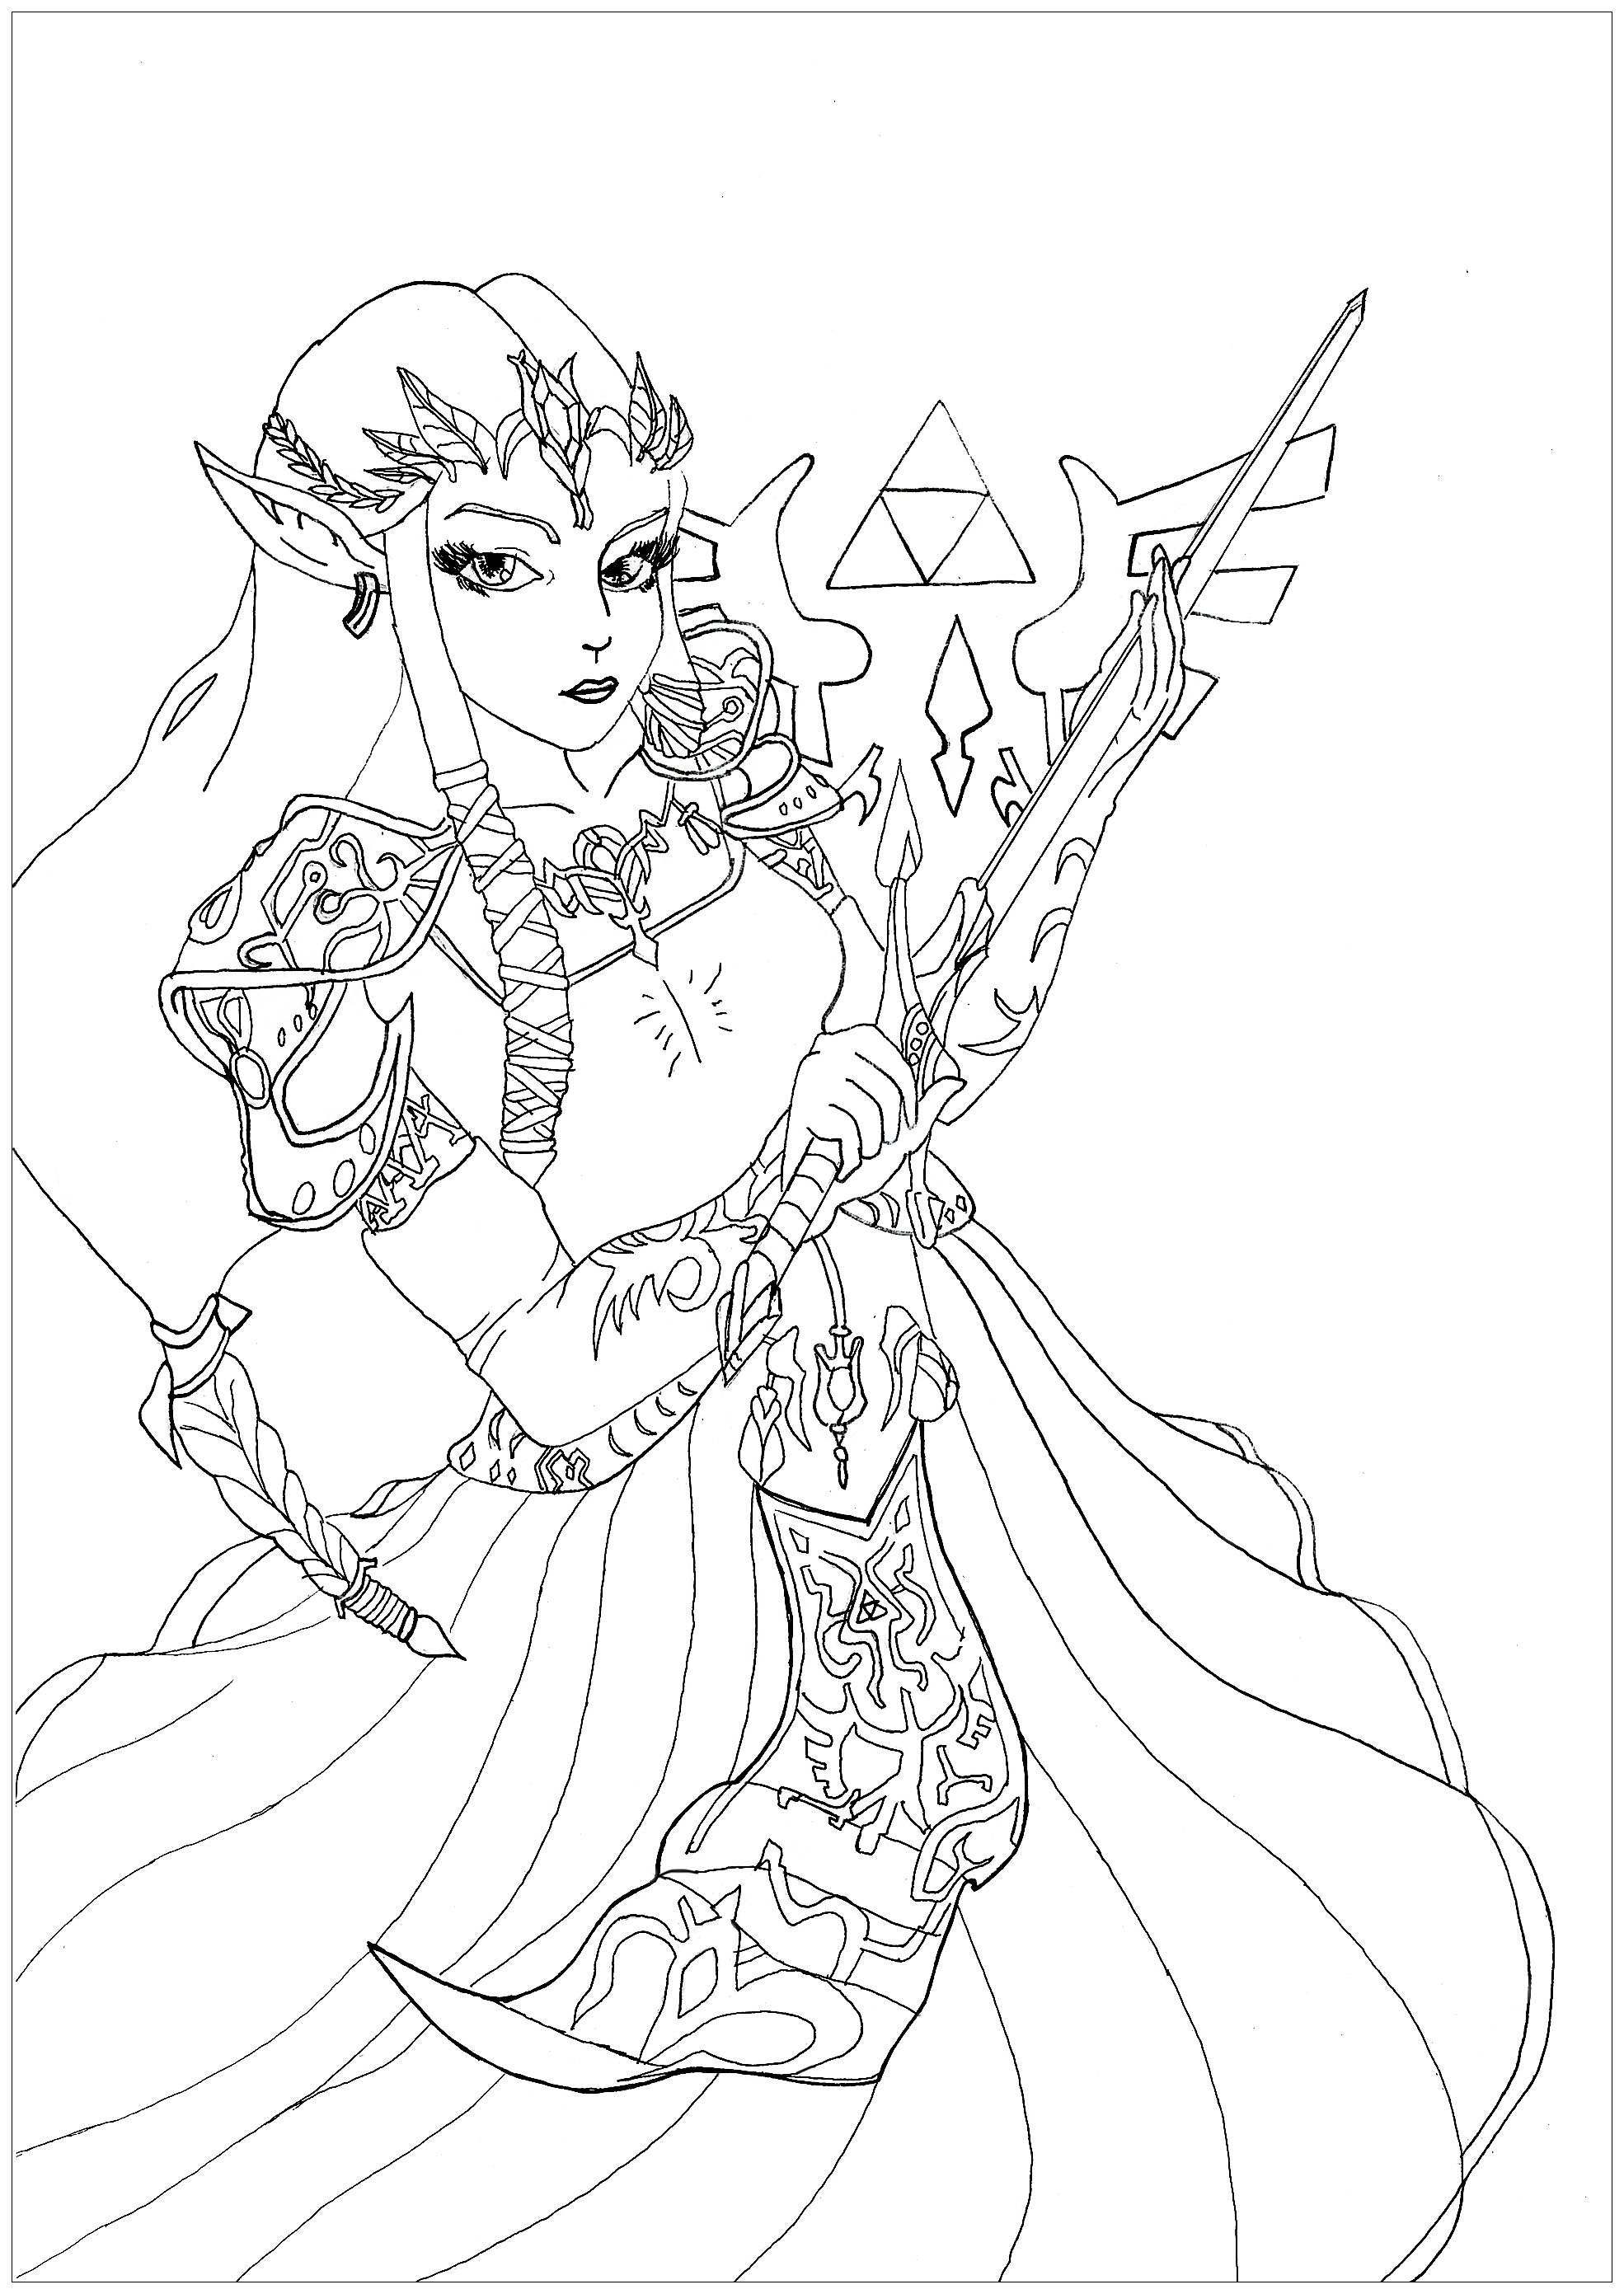 Free Zelda coloring page to download